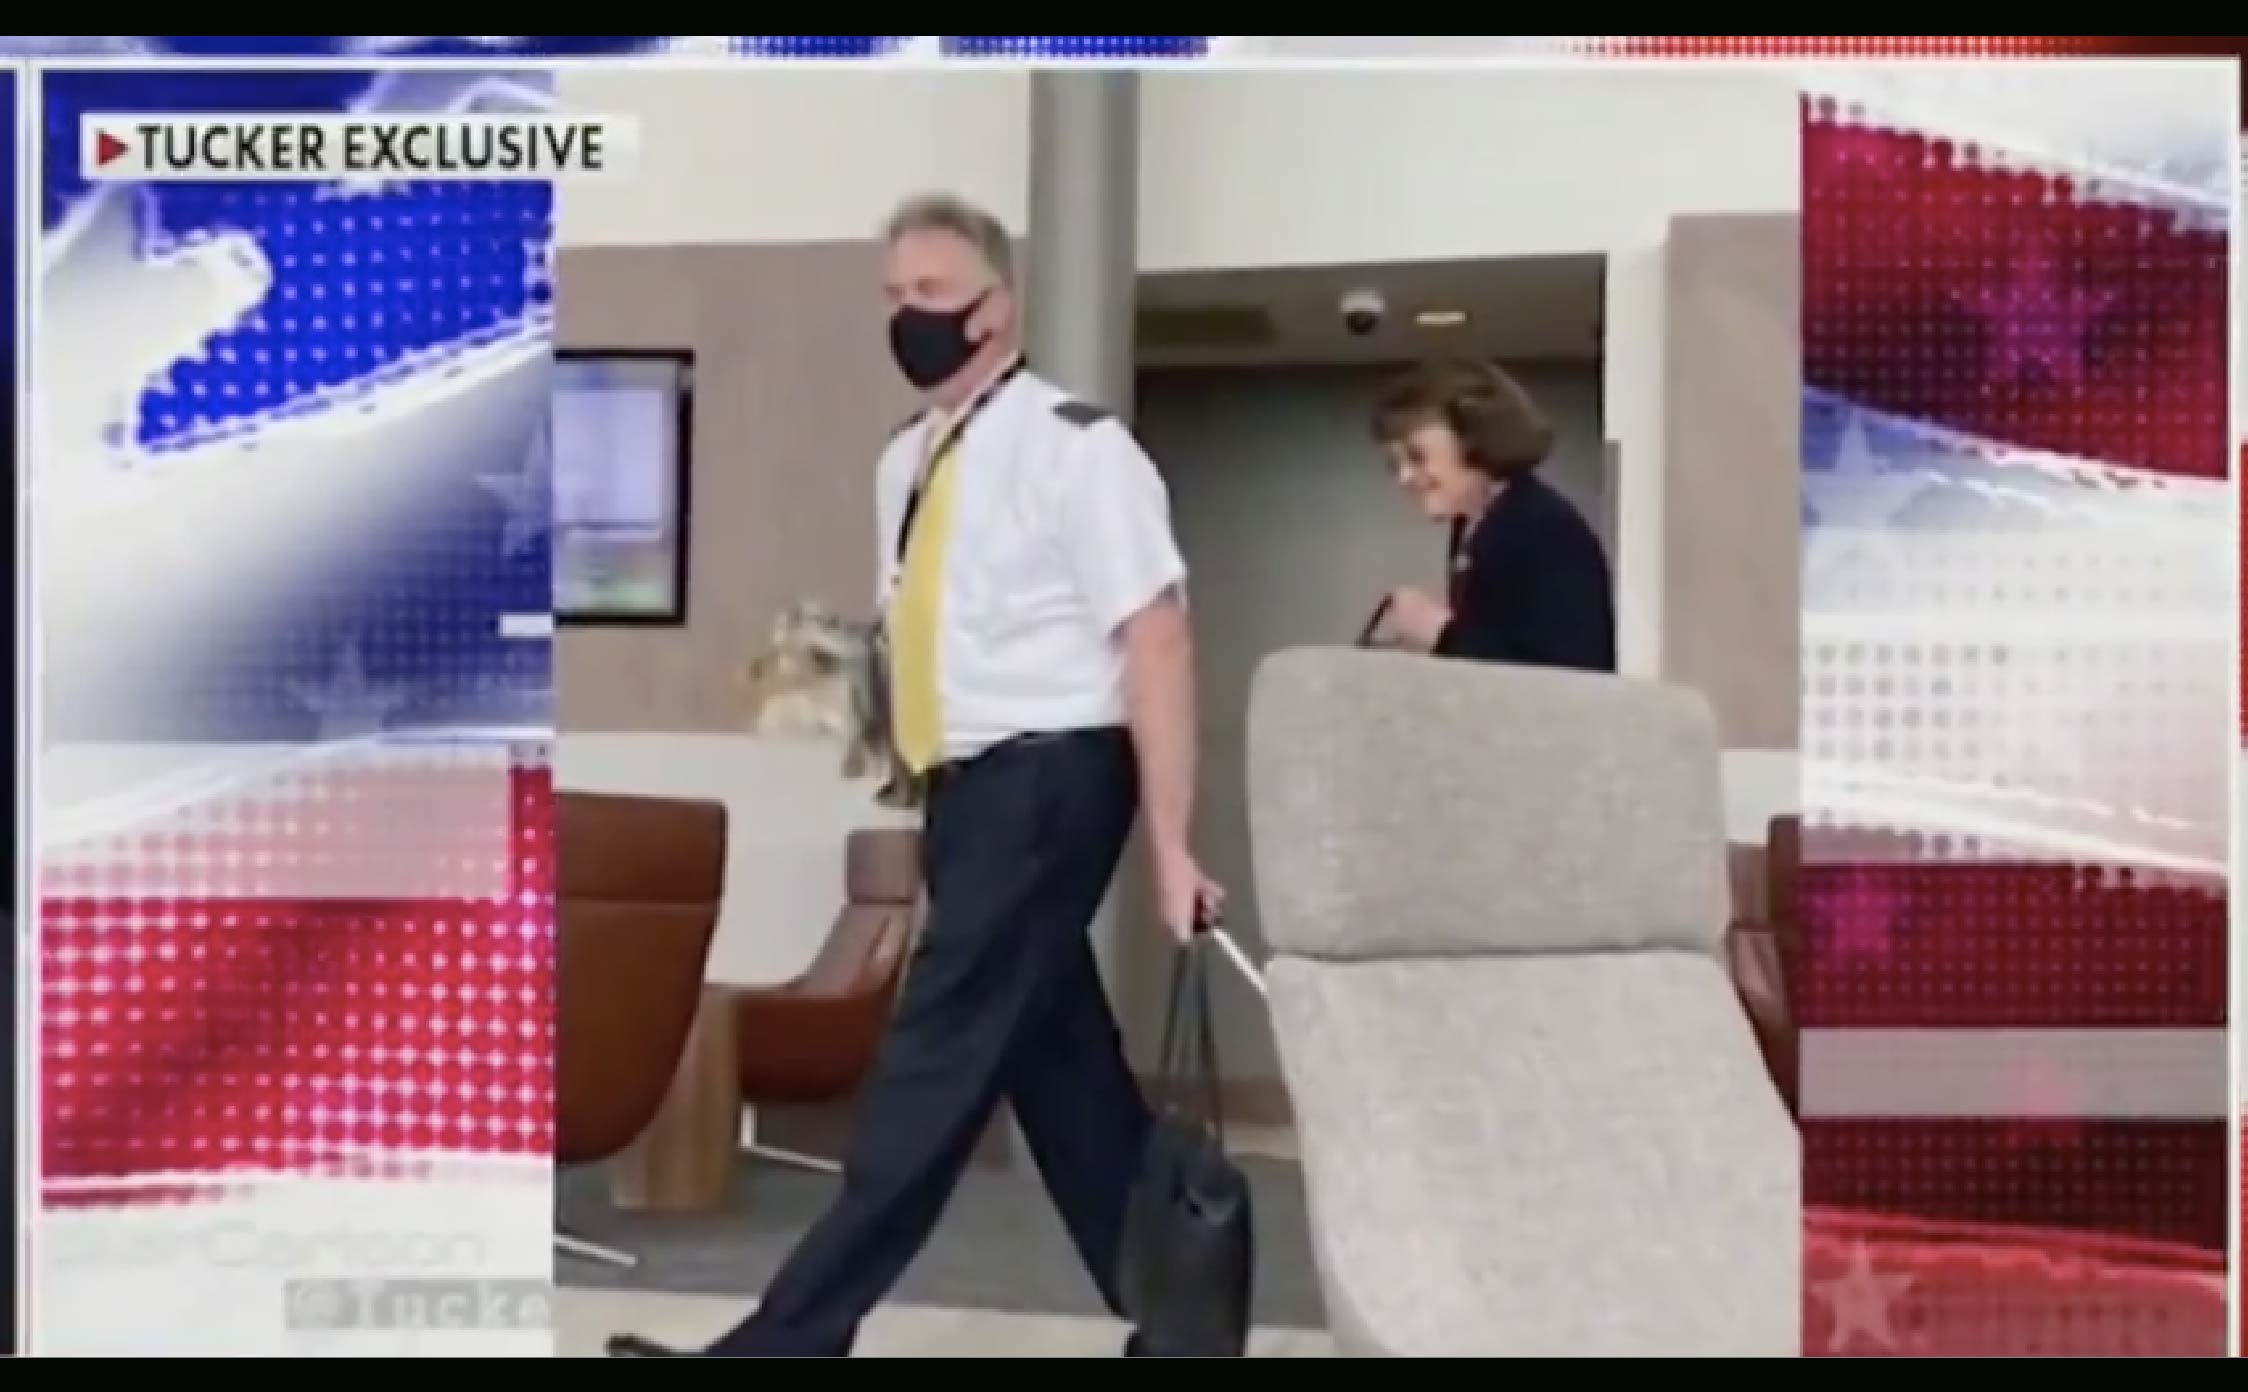 """[VIDEO] Dianne Feinstein Who Called for """"Nationwide Mask Mandate"""" Busted at 2 Different Airports Not Wearing a Mask"""